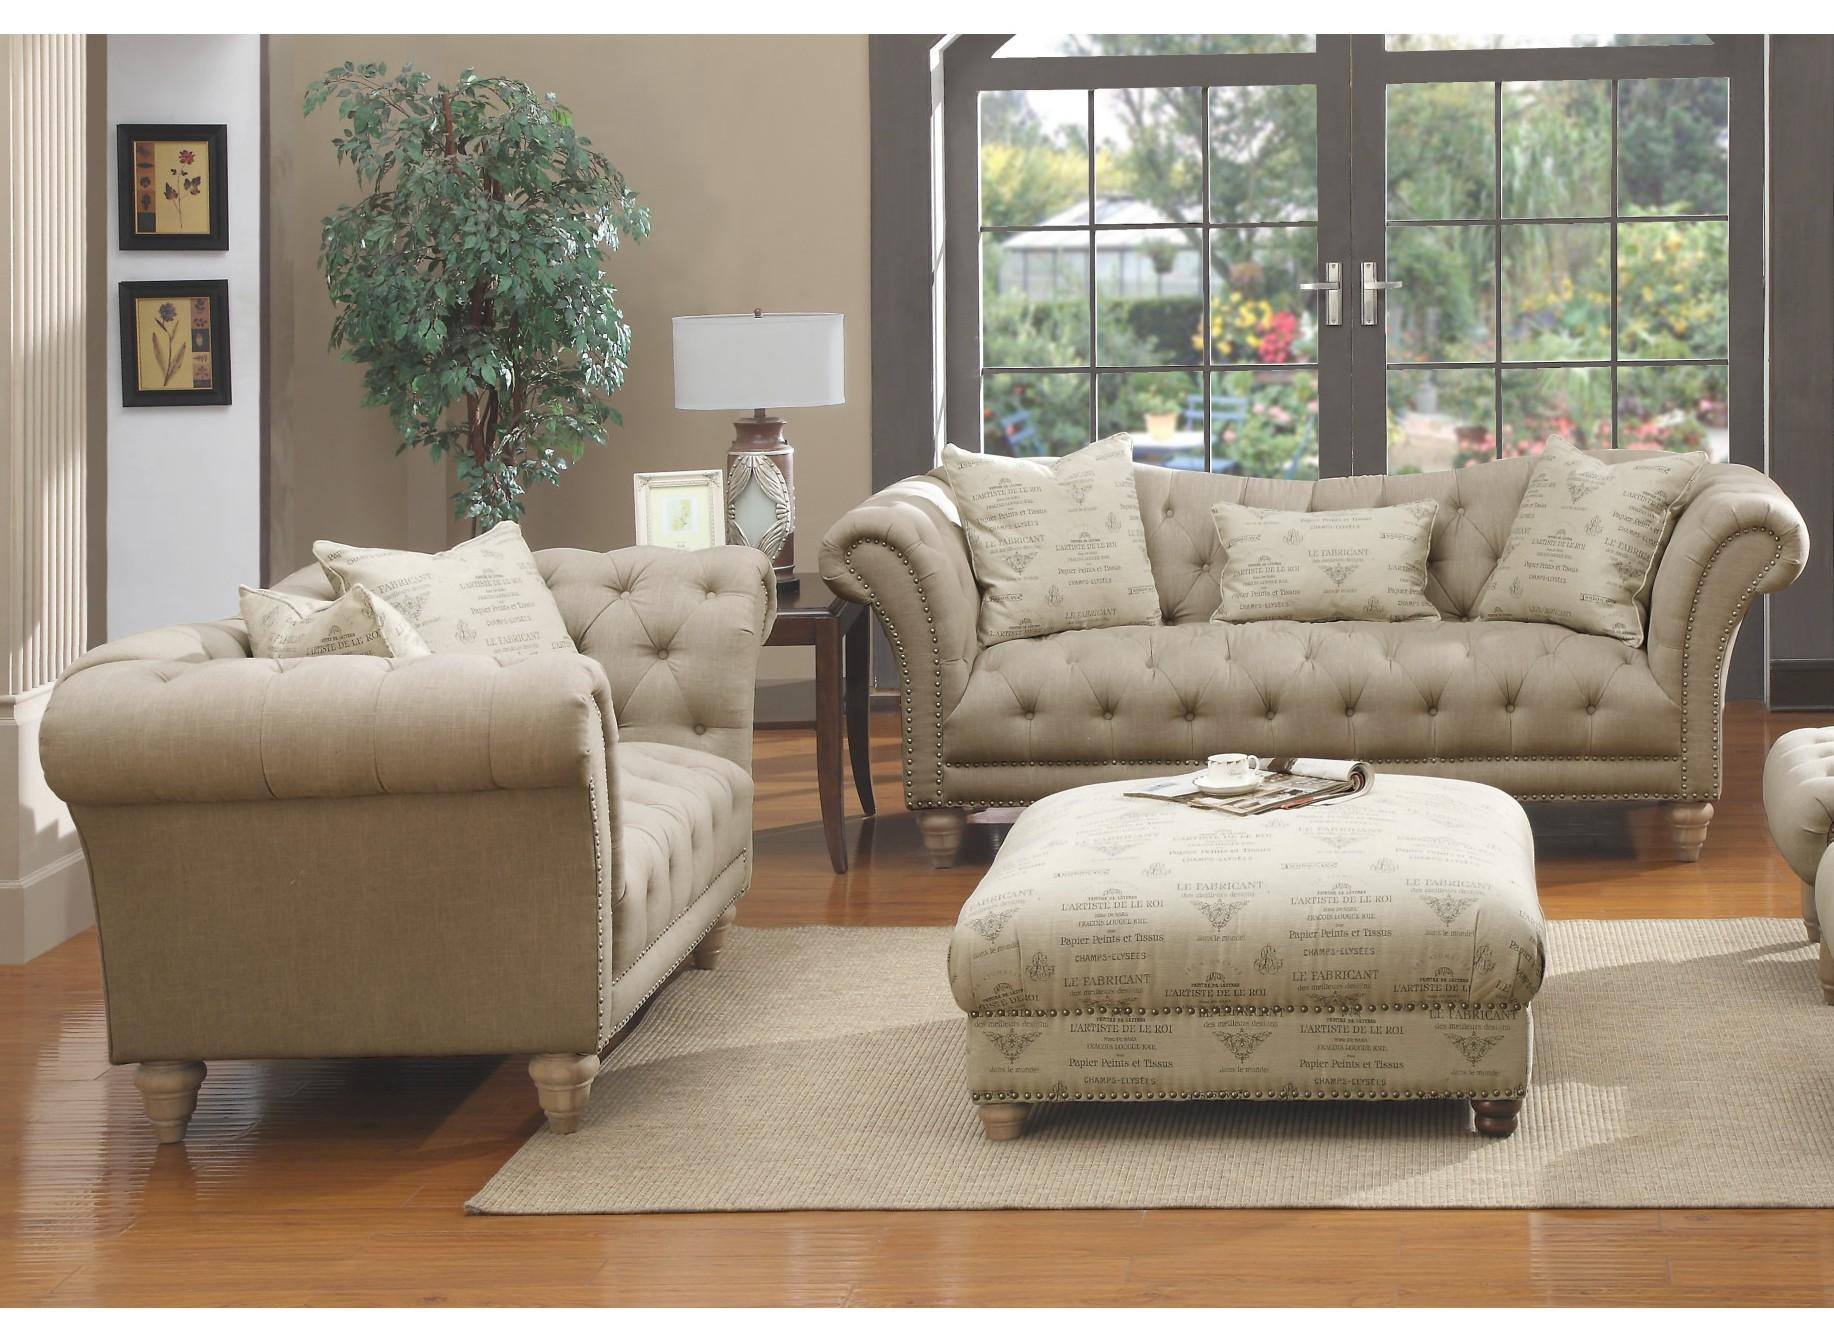 Emerald Home Hutton Ii Off White 4pc Living Room Set With